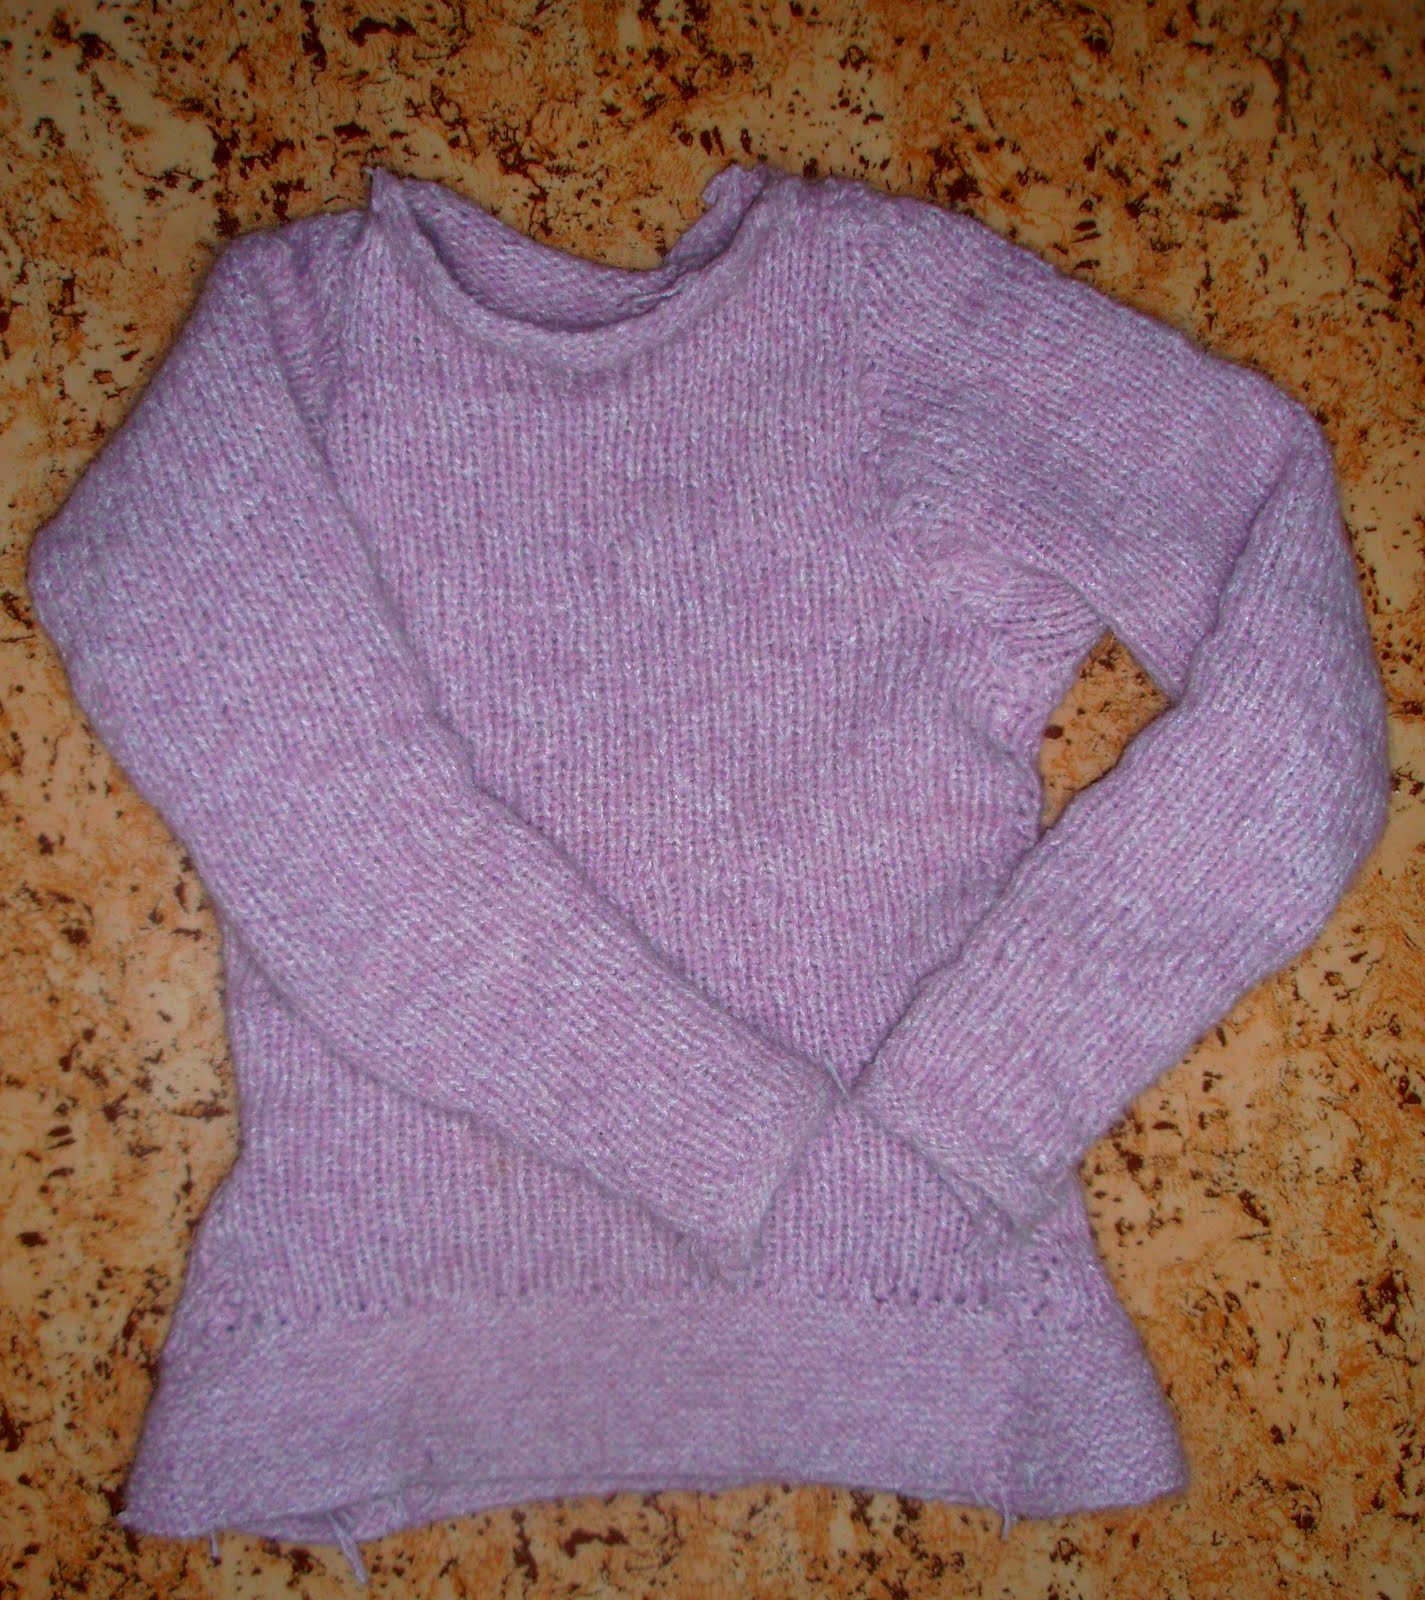 Knitting Mill Prym : Love all races sweater with prym knitting mill part